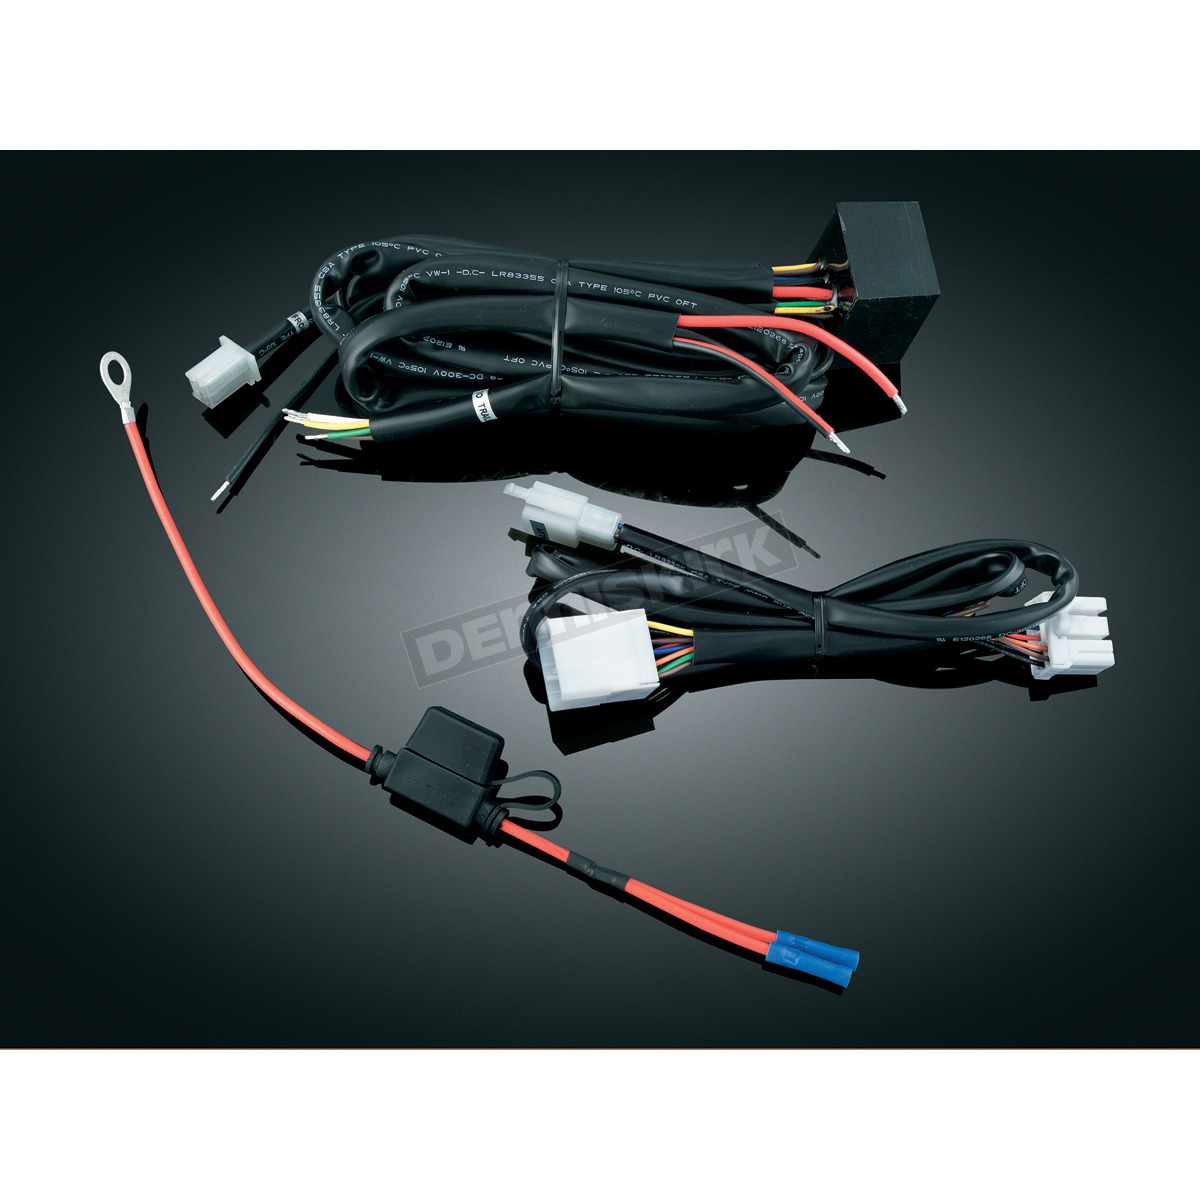 oe215973 kuryakyn plug and play trailer wiring and relay harness 7672  at creativeand.co